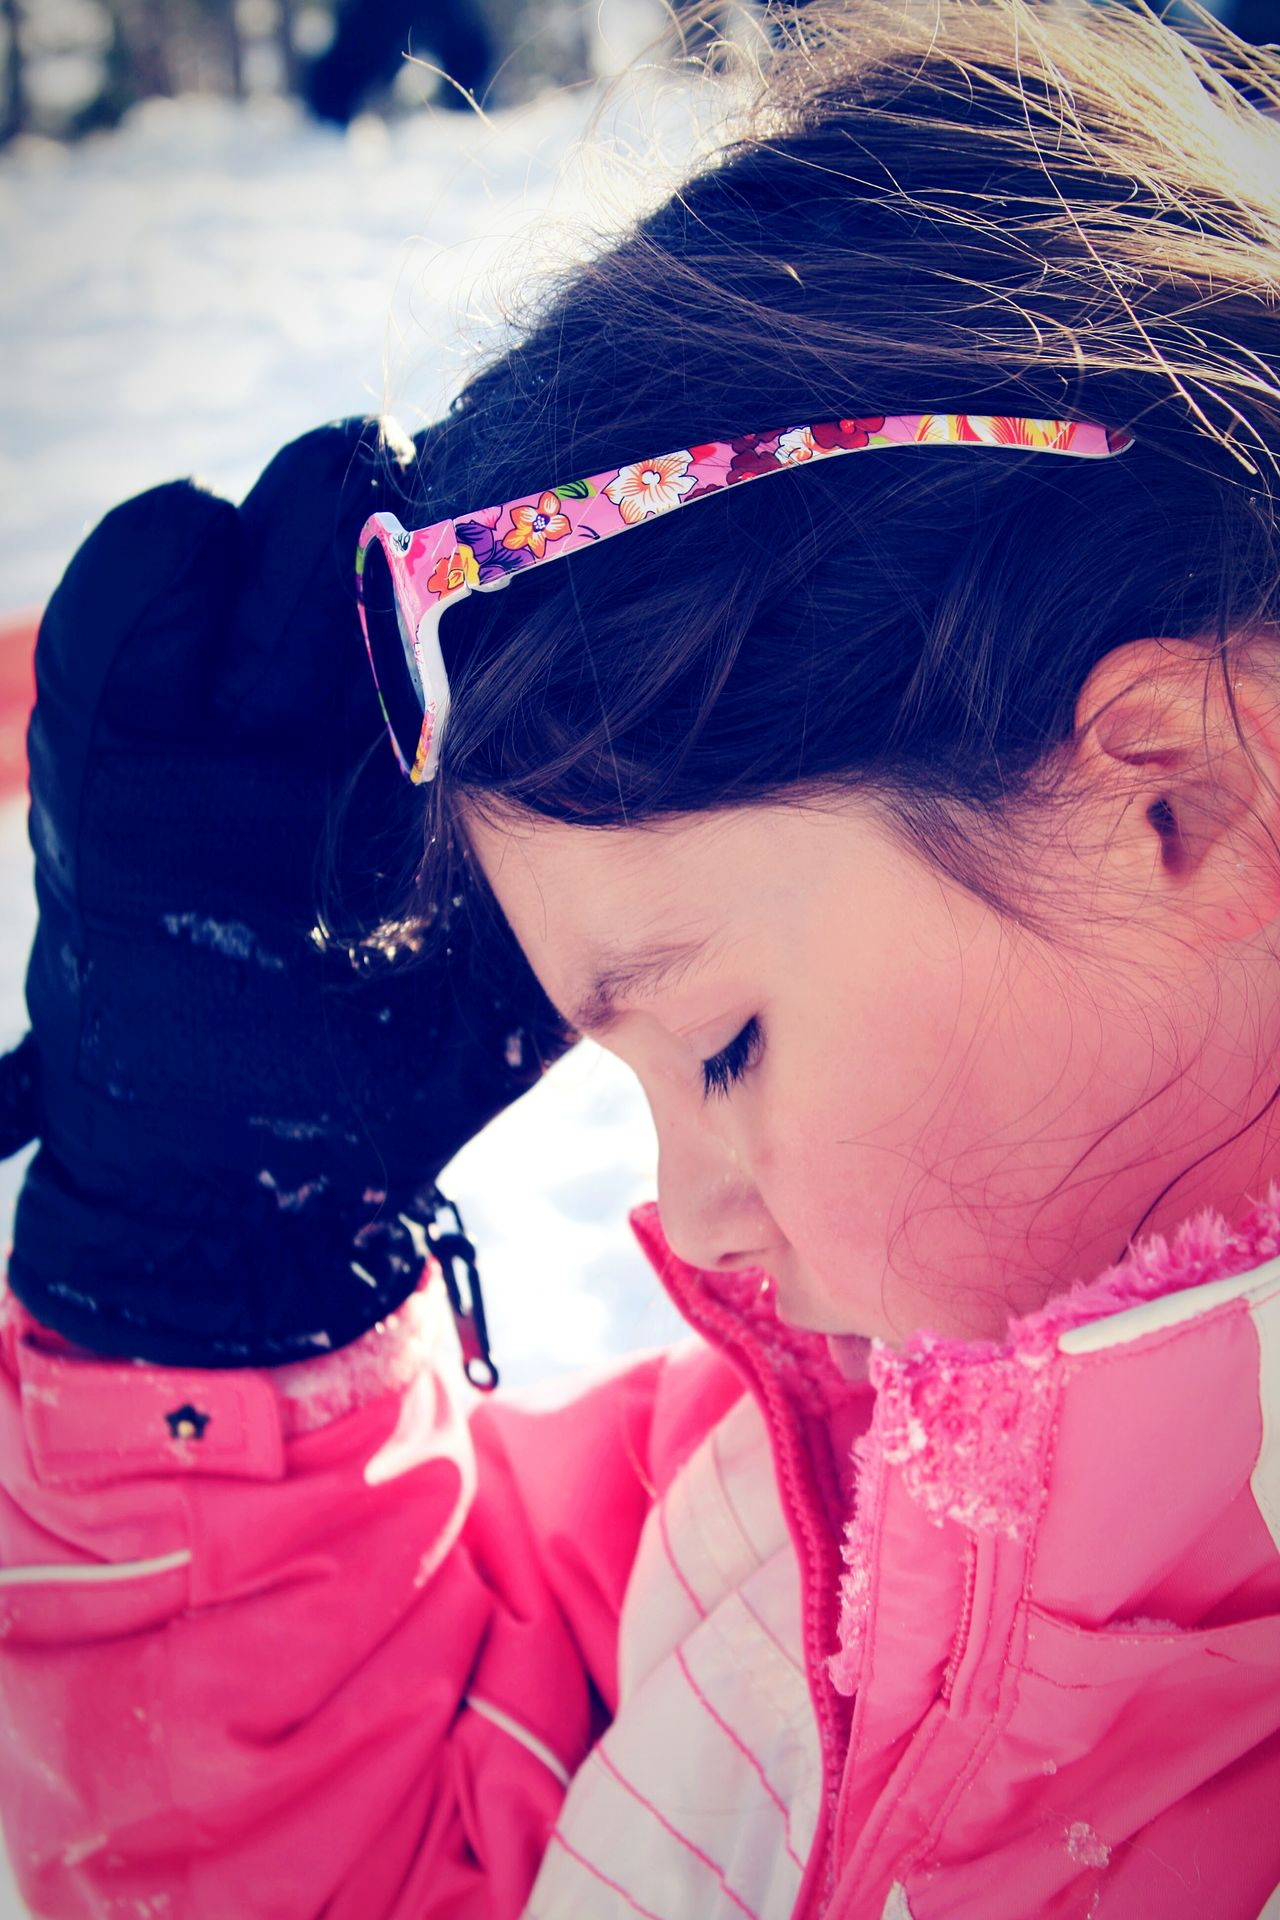 Snow Sports Child Outdoors Winter Portrait Day Beauty In Nature Enjoying Life Live, Love, Laugh Snow Day Sledding Fun Random Acts Of Photography One Person Childhood Close-up